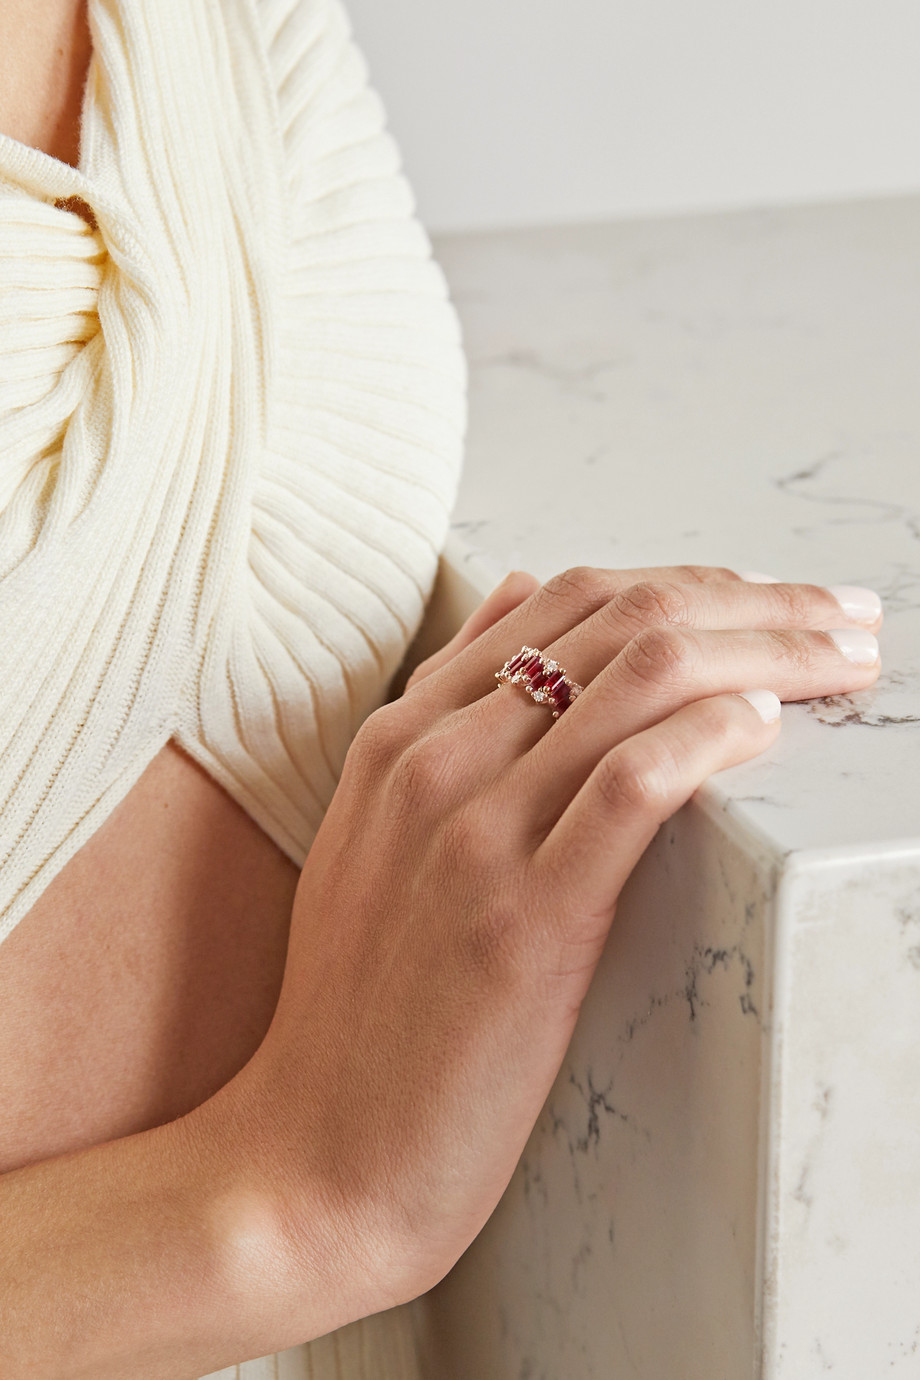 Suzanne Kalan Bague en or rose 18 carats, rubis et diamants Audrey